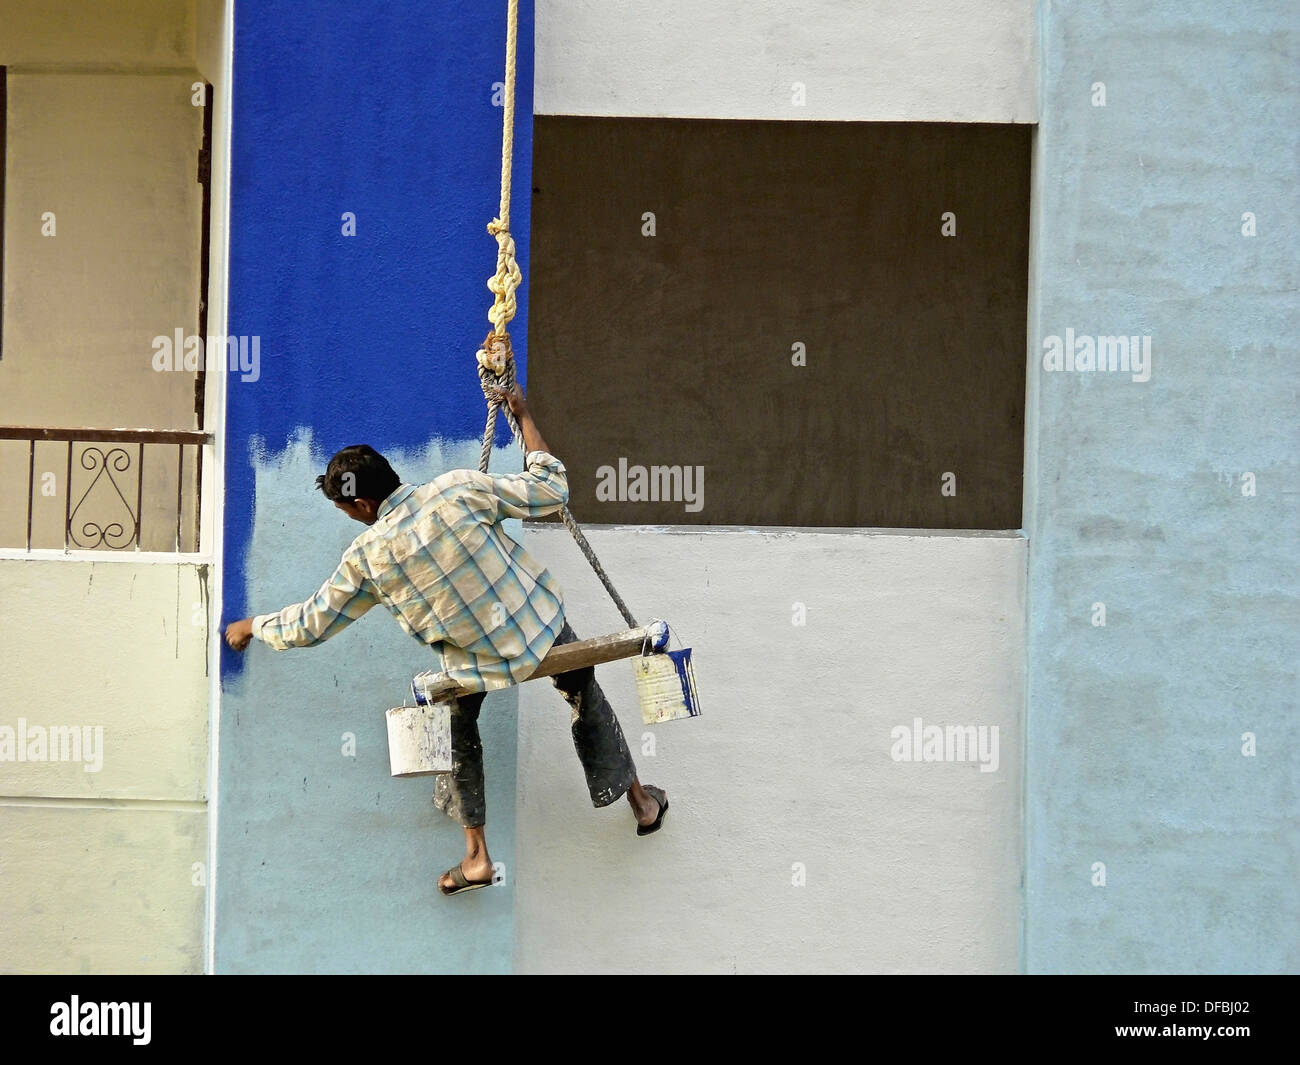 A Painter is seating on a cradle for buildings exterior painting